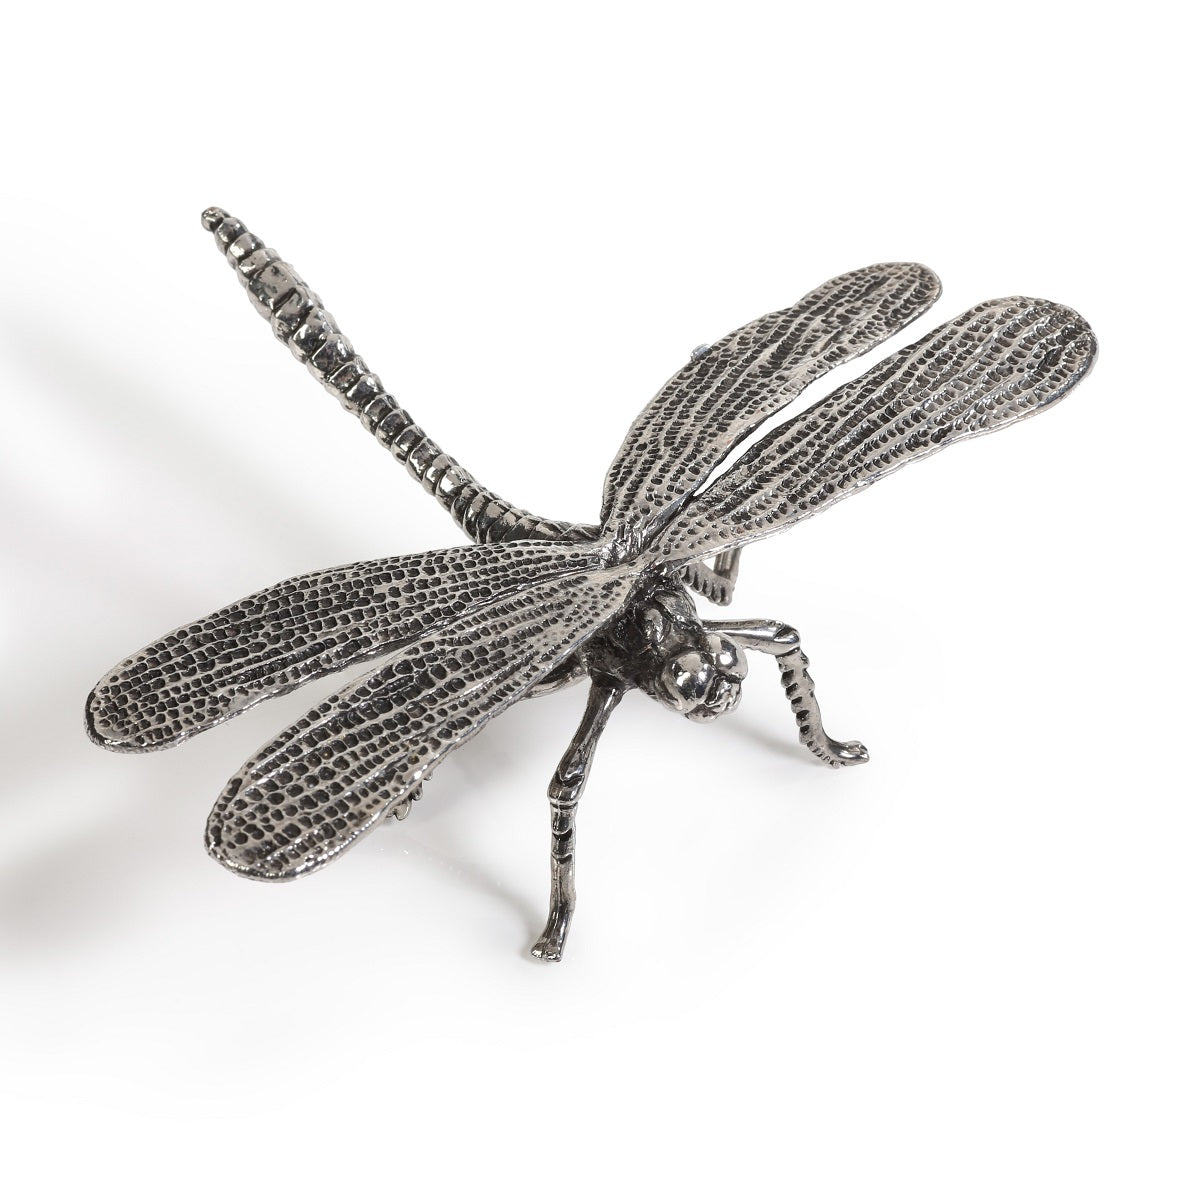 Decorative Antique Pewter Dragonfly - CARLYLE AVENUE